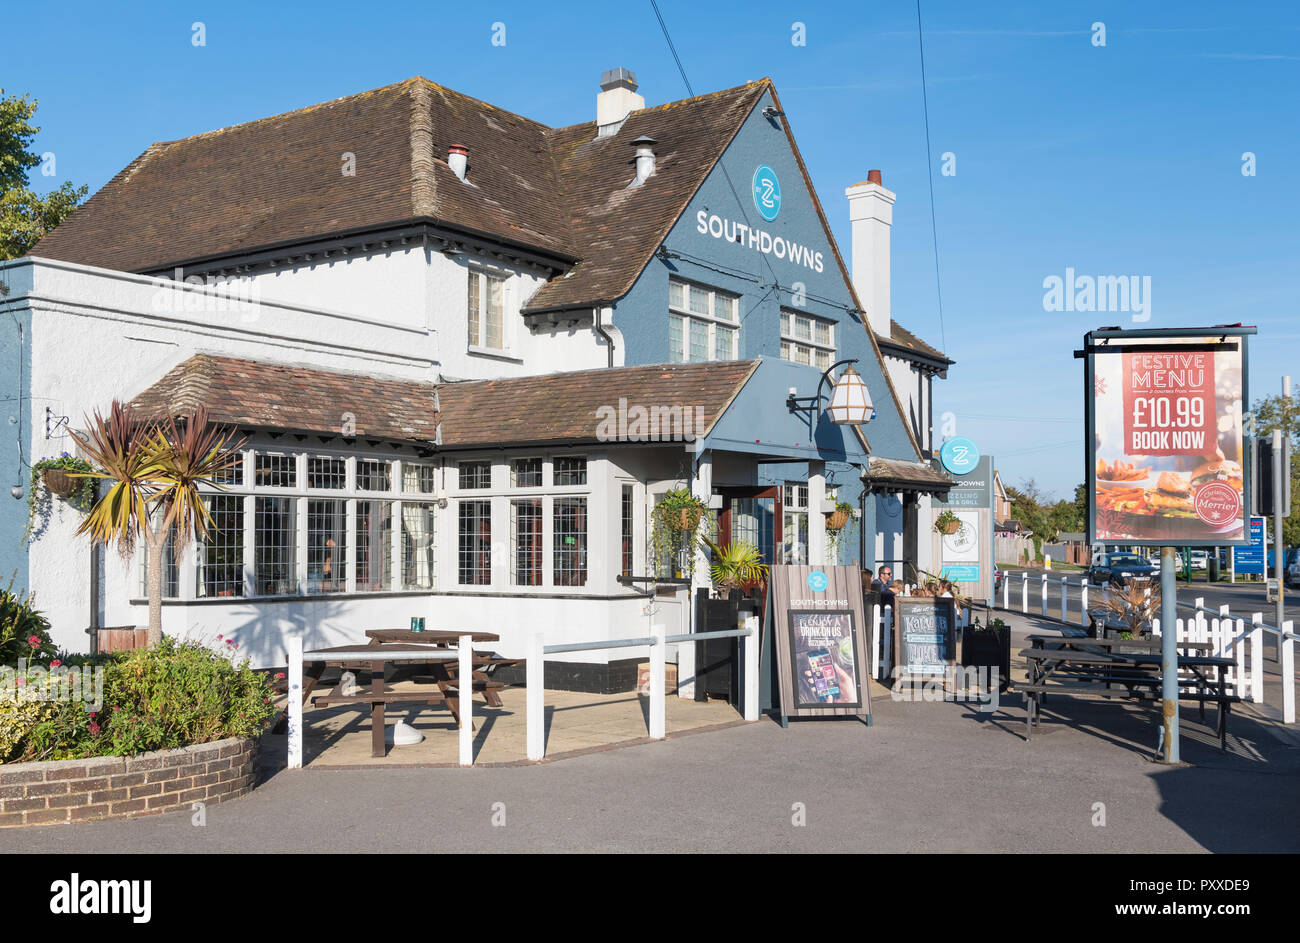 The Southdowns pub & grill from the Sizzling Pubs chain in Bognor Regis, West Sussex, England, UK. - Stock Image